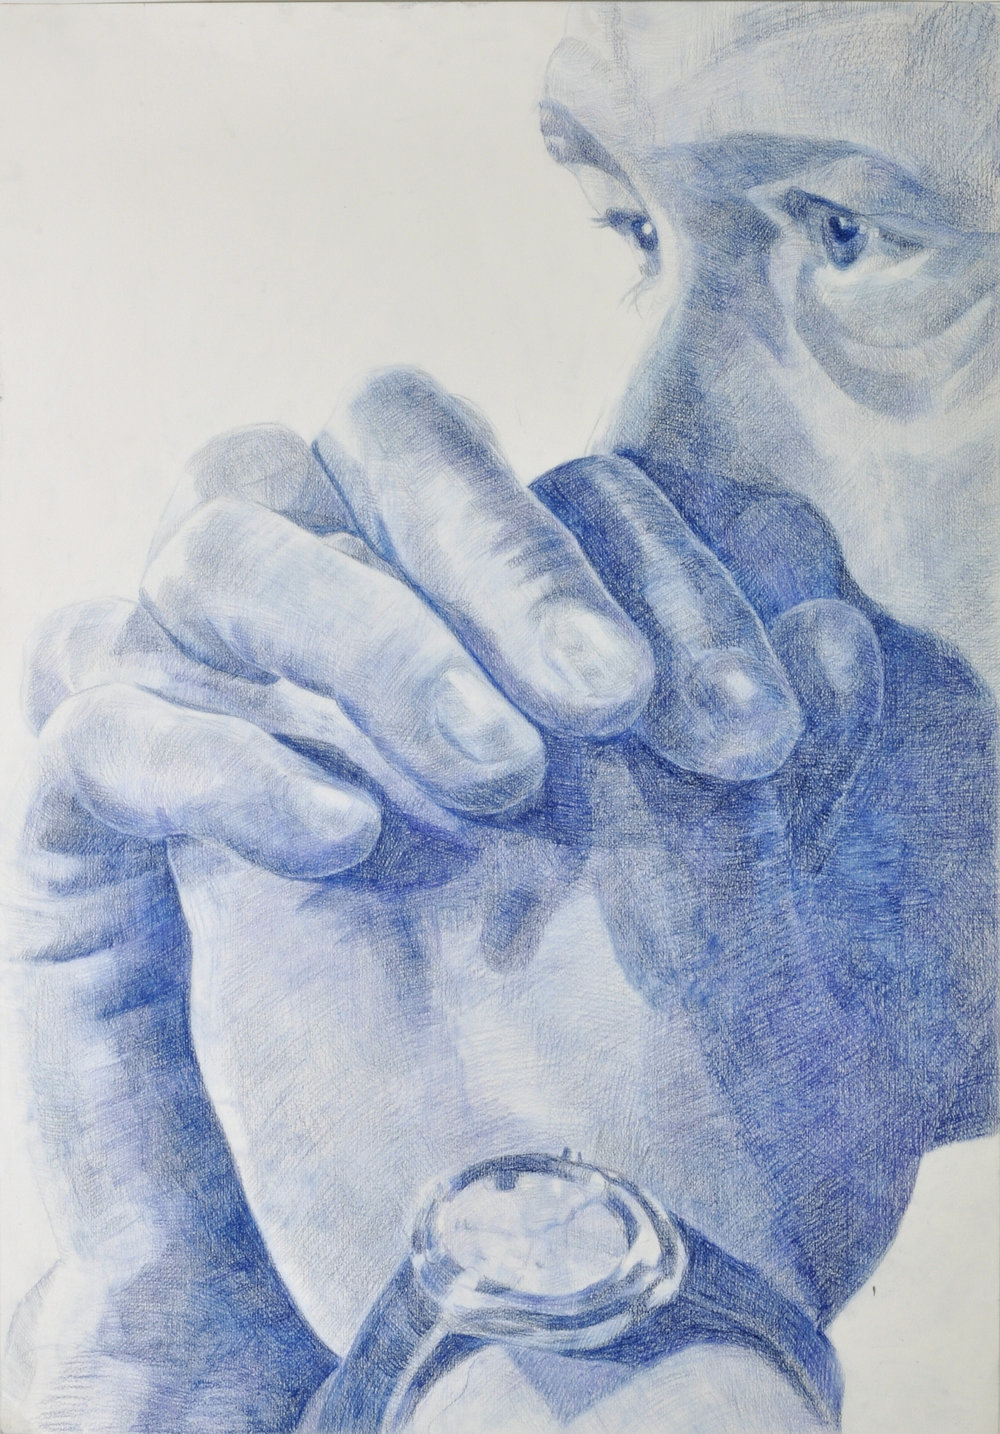 Praying Hands #7